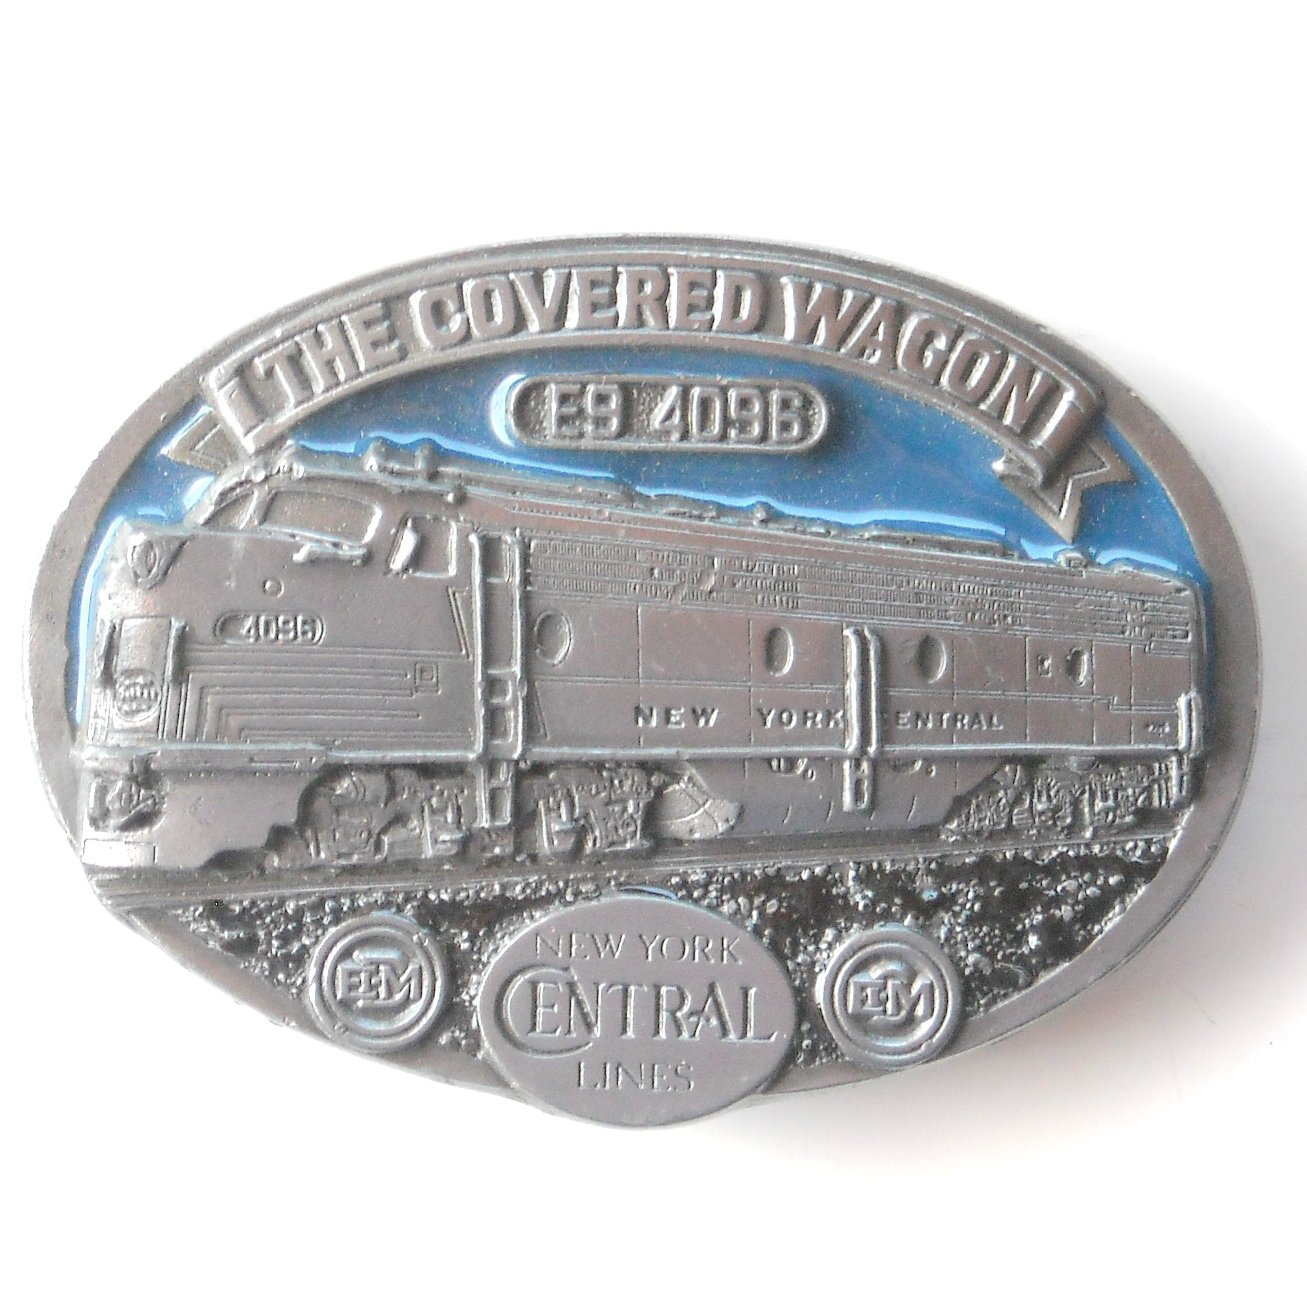 The Covered Wagon New York Central Lines C+J 1988 C&J Inc pewter alloy belt buckle